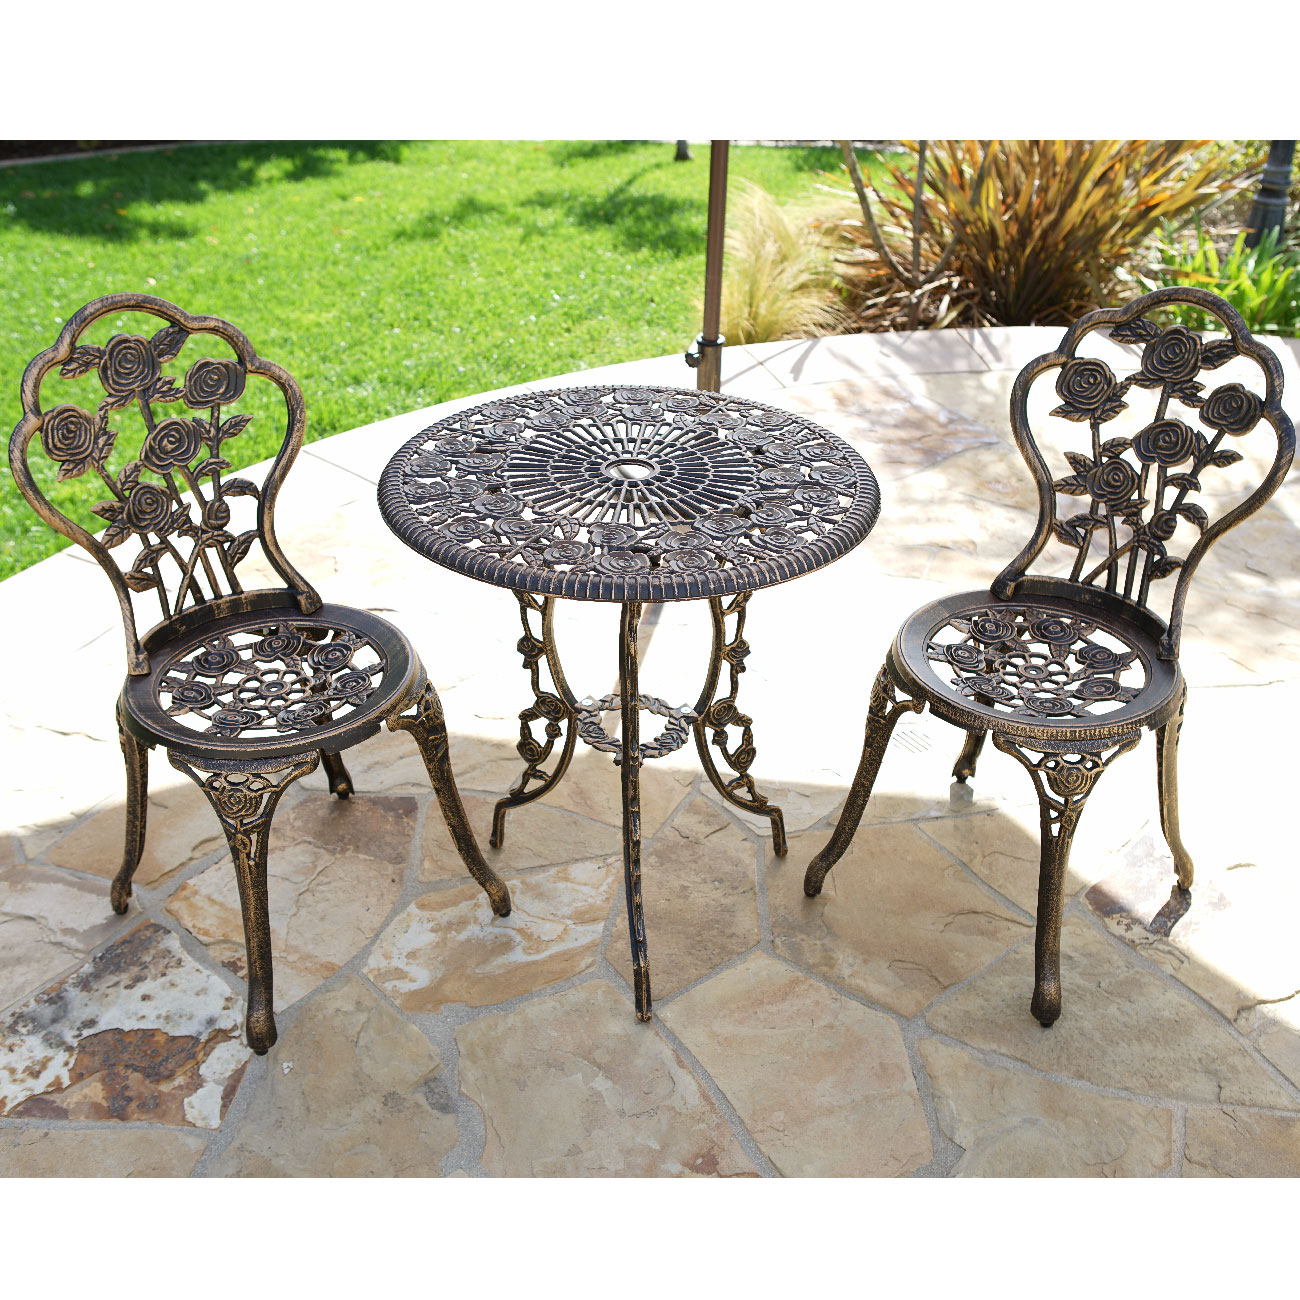 Aluminum Outdoor Patio Furniture